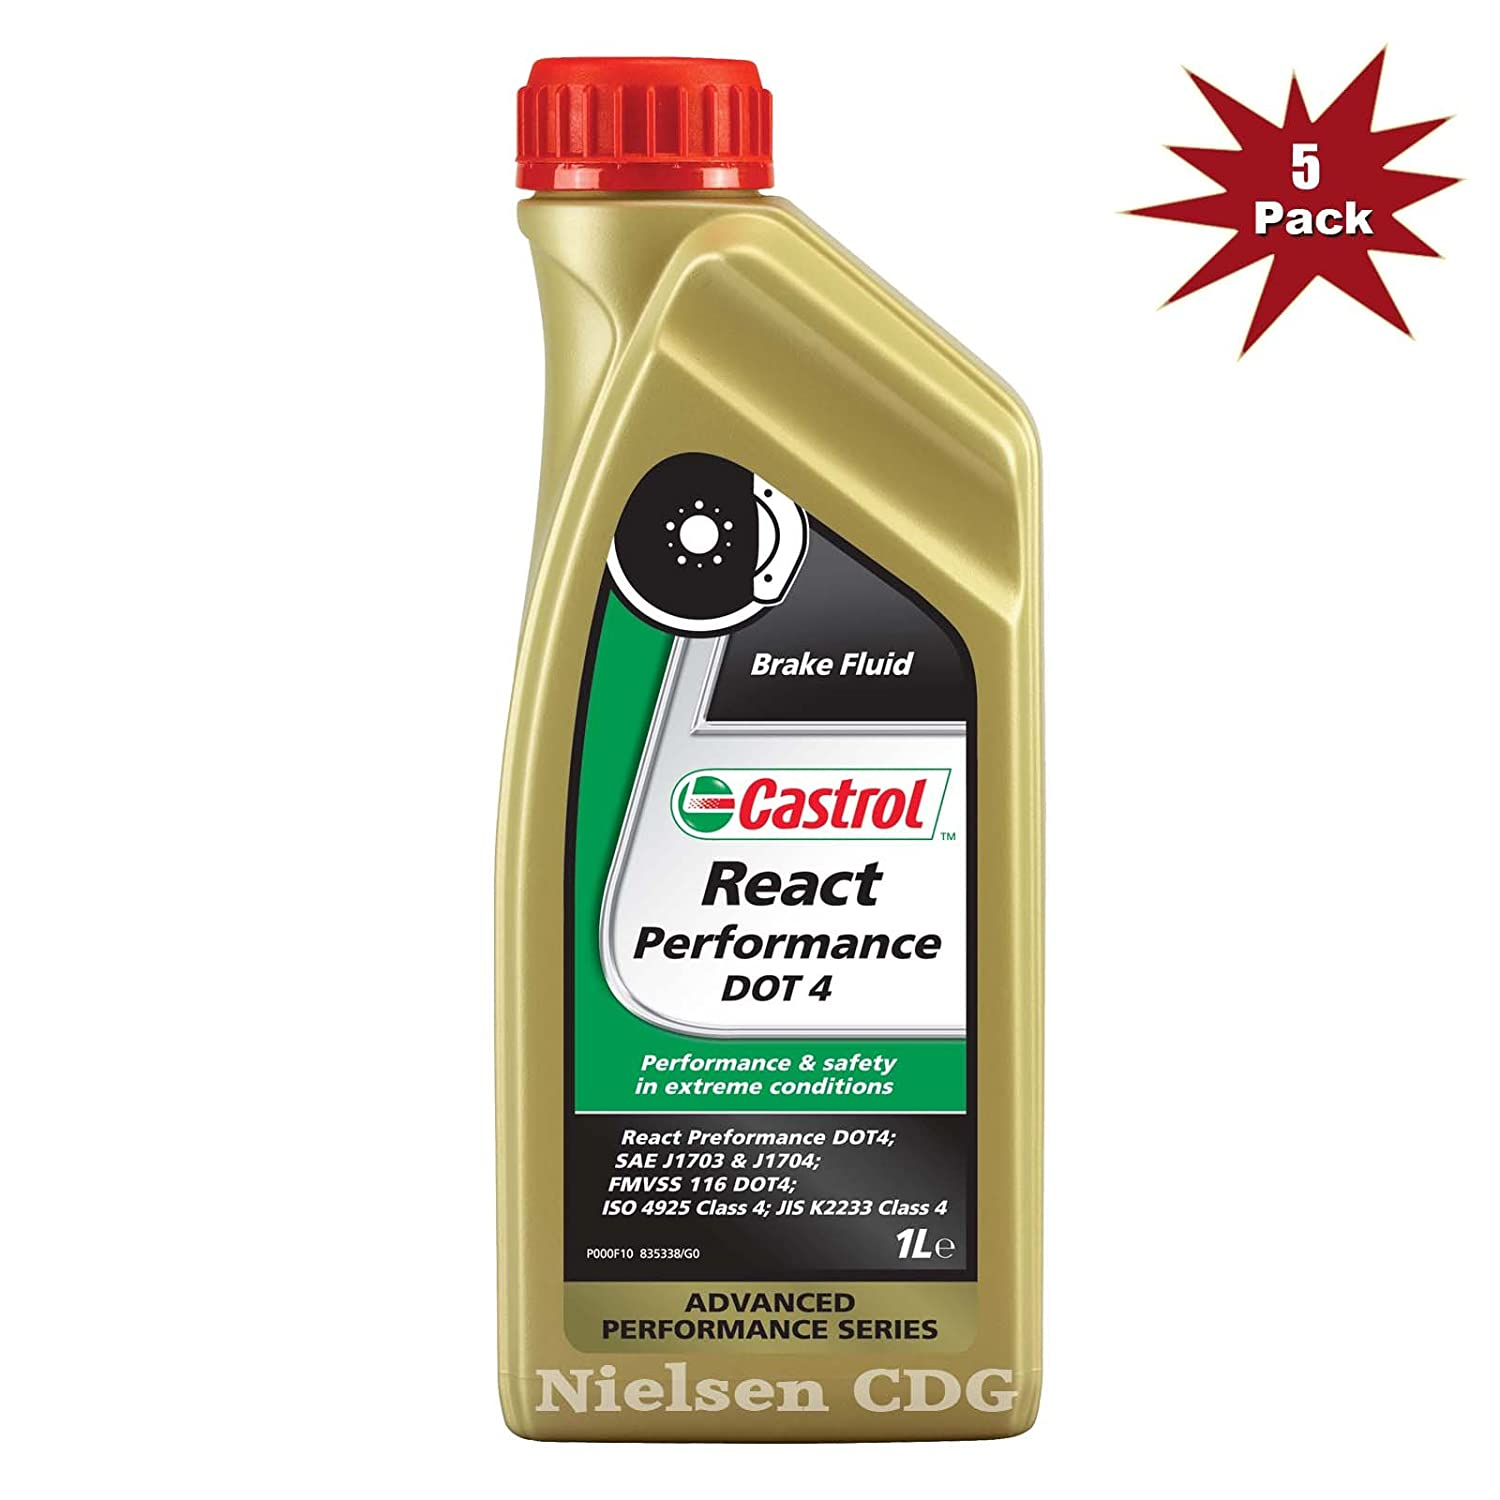 Castrol React Performance DOT 4 Brake Fluid - 5x1L = 5 Litre Nielsen CDG